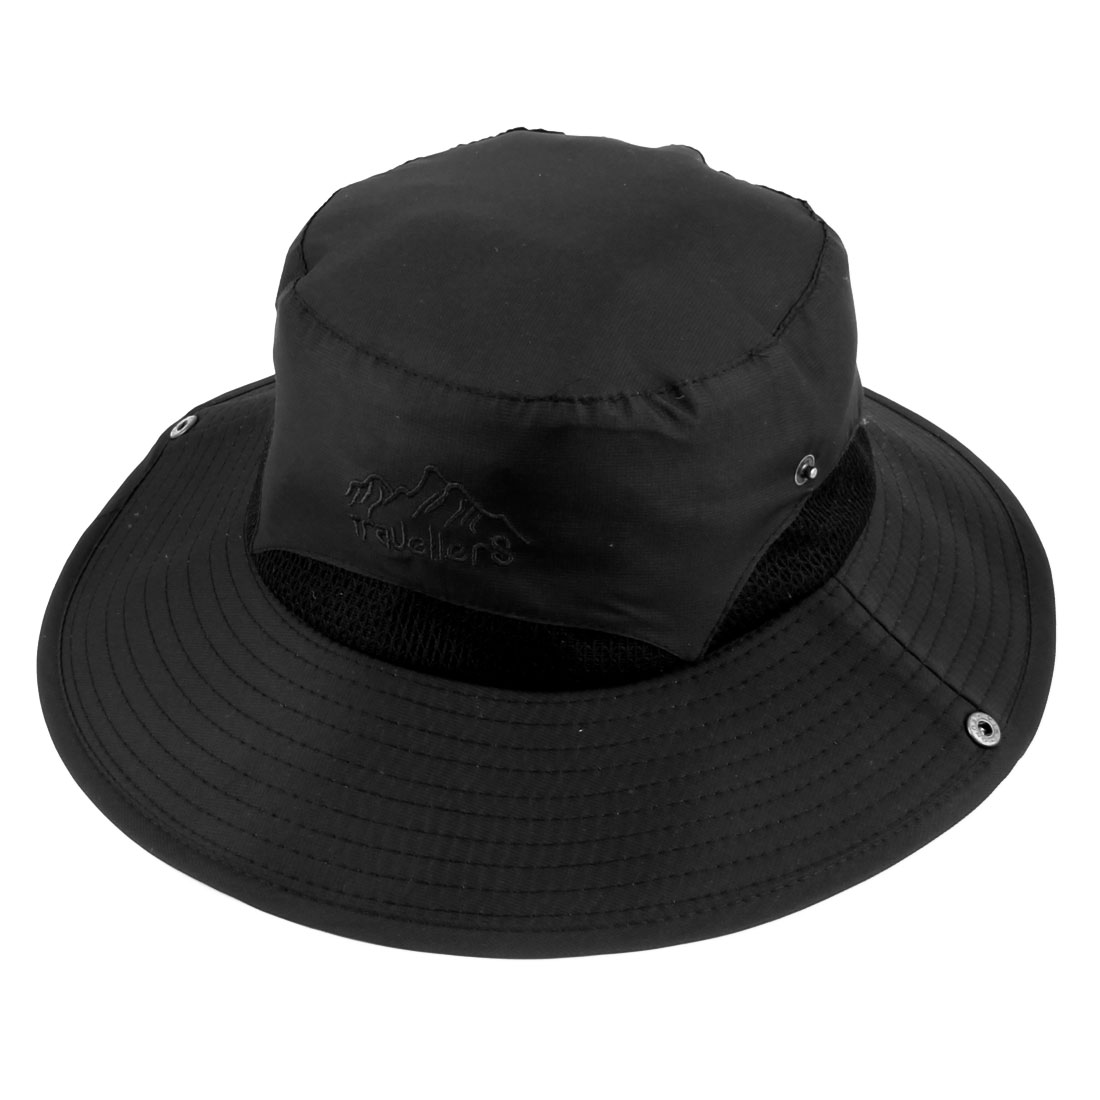 Ladies Women Polyester Foldable Head Decor Summer Protective Traveling Wide Brim Sun Cap Beach Fishing Hat Black